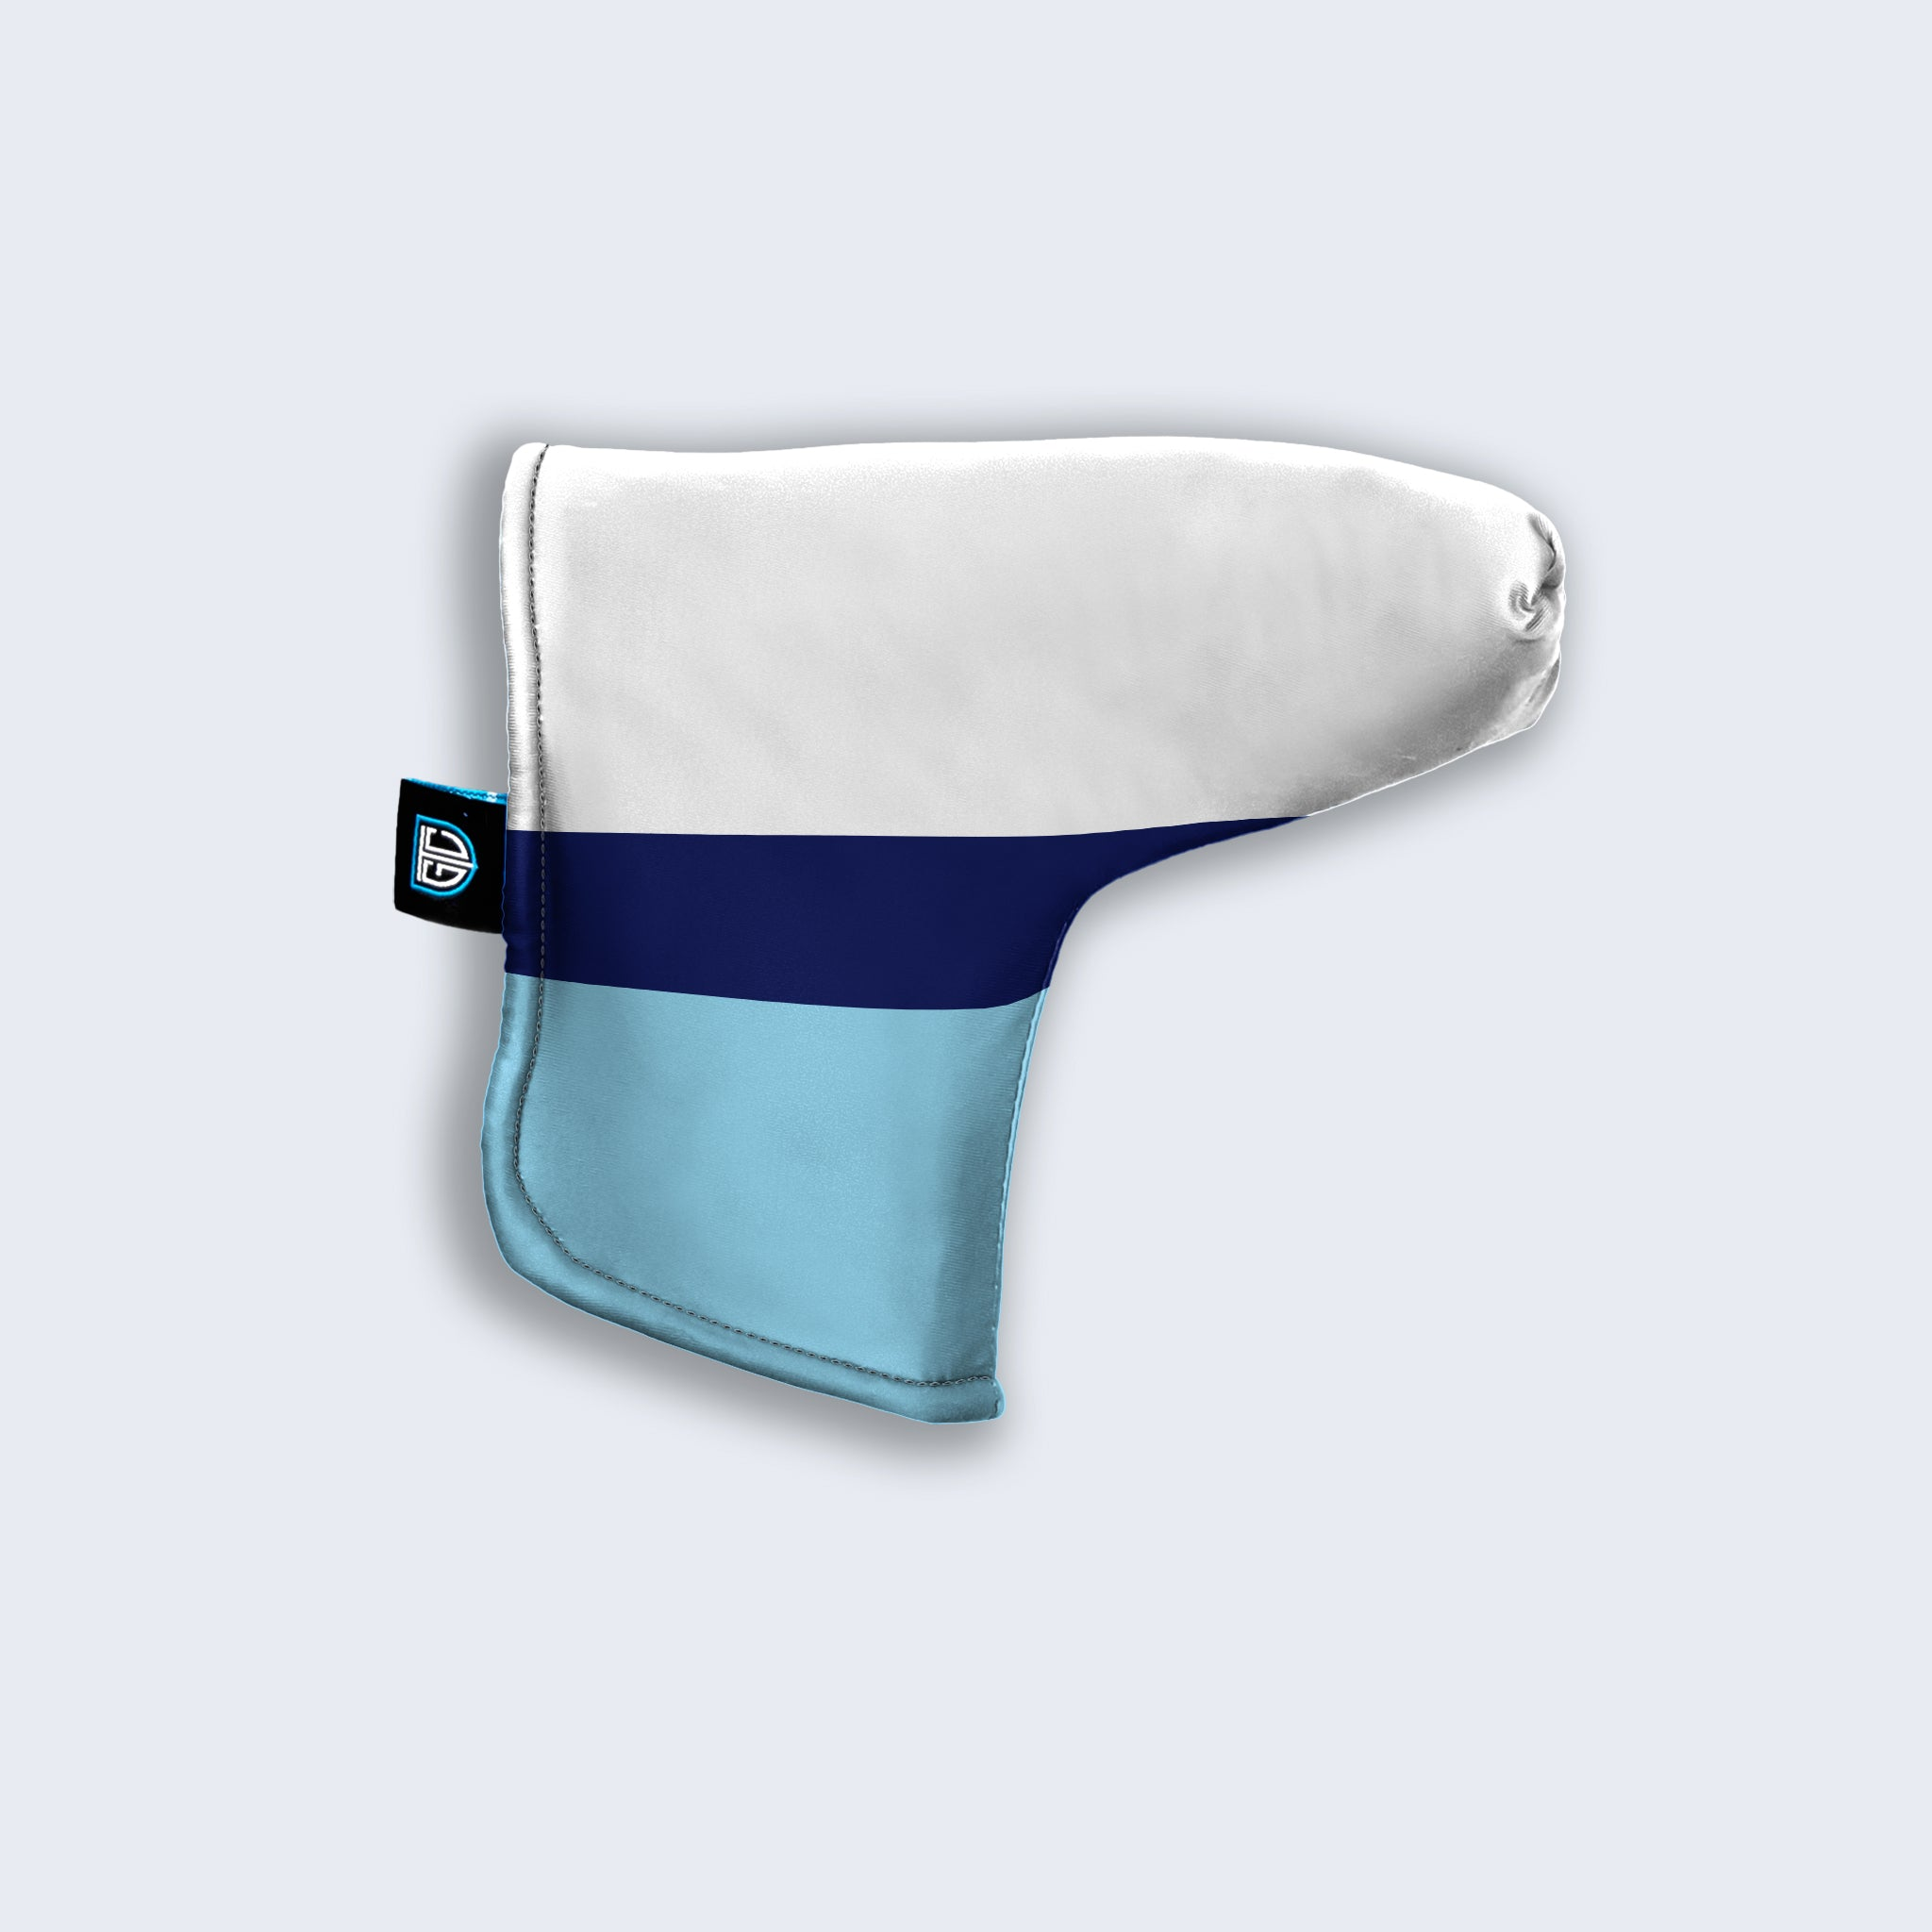 White/Navy/Blue Head Covers - personalised golf clothing, golf teamwear, Head Covers, Towels & accessories online